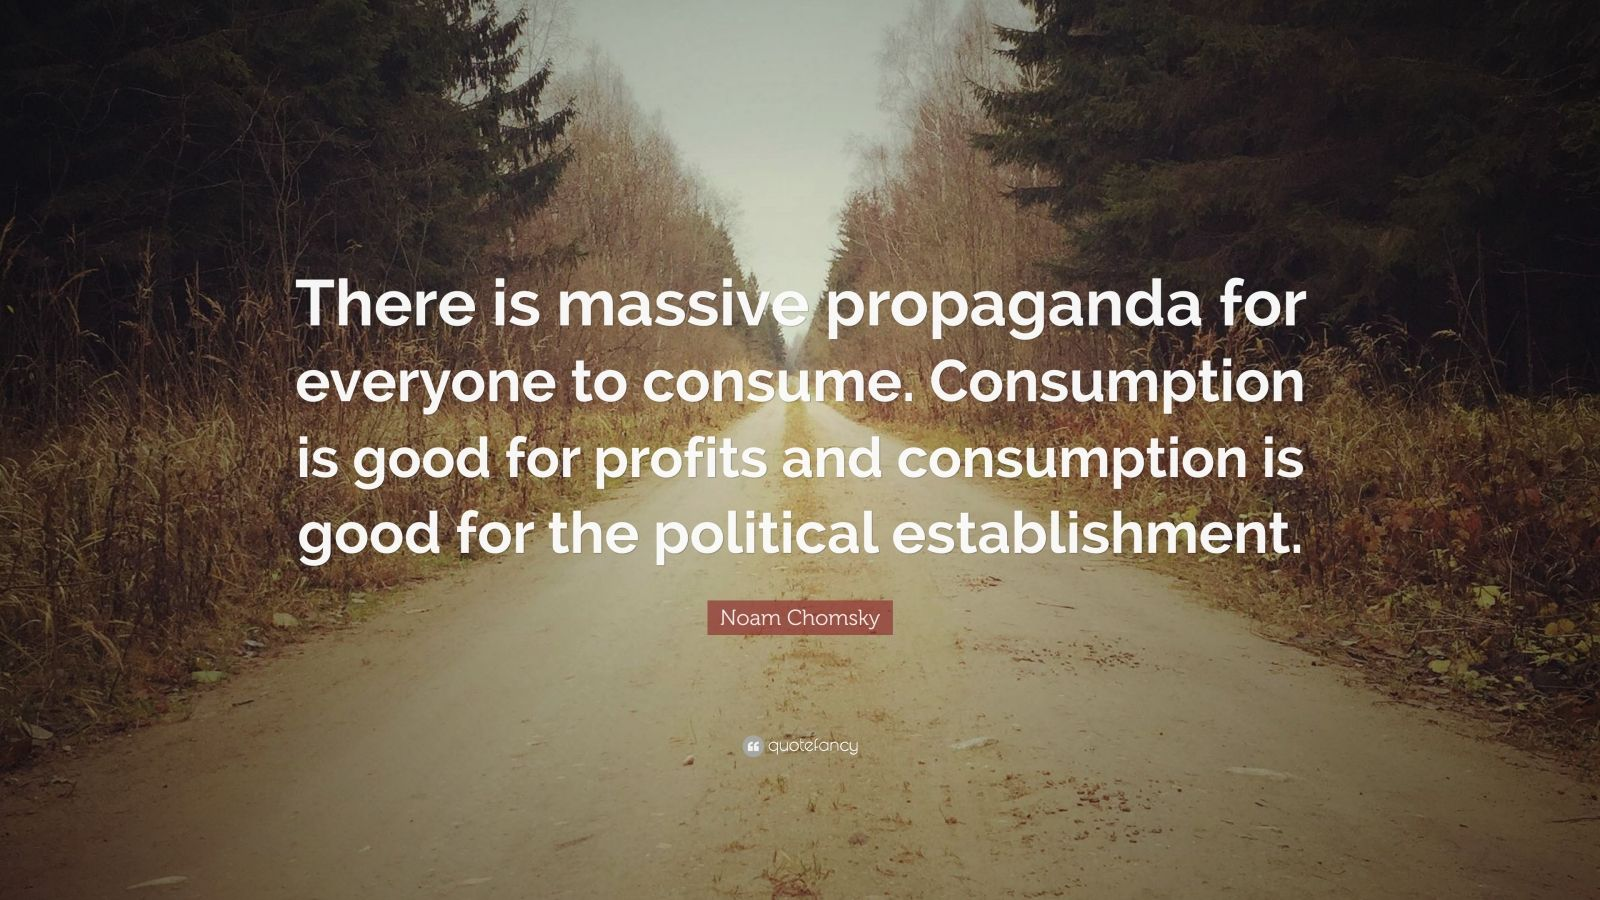 """Noam Chomsky Quote: """"There is massive propaganda for everyone to consume. Consumption is good for profits and consumption is good for the political establishment."""""""